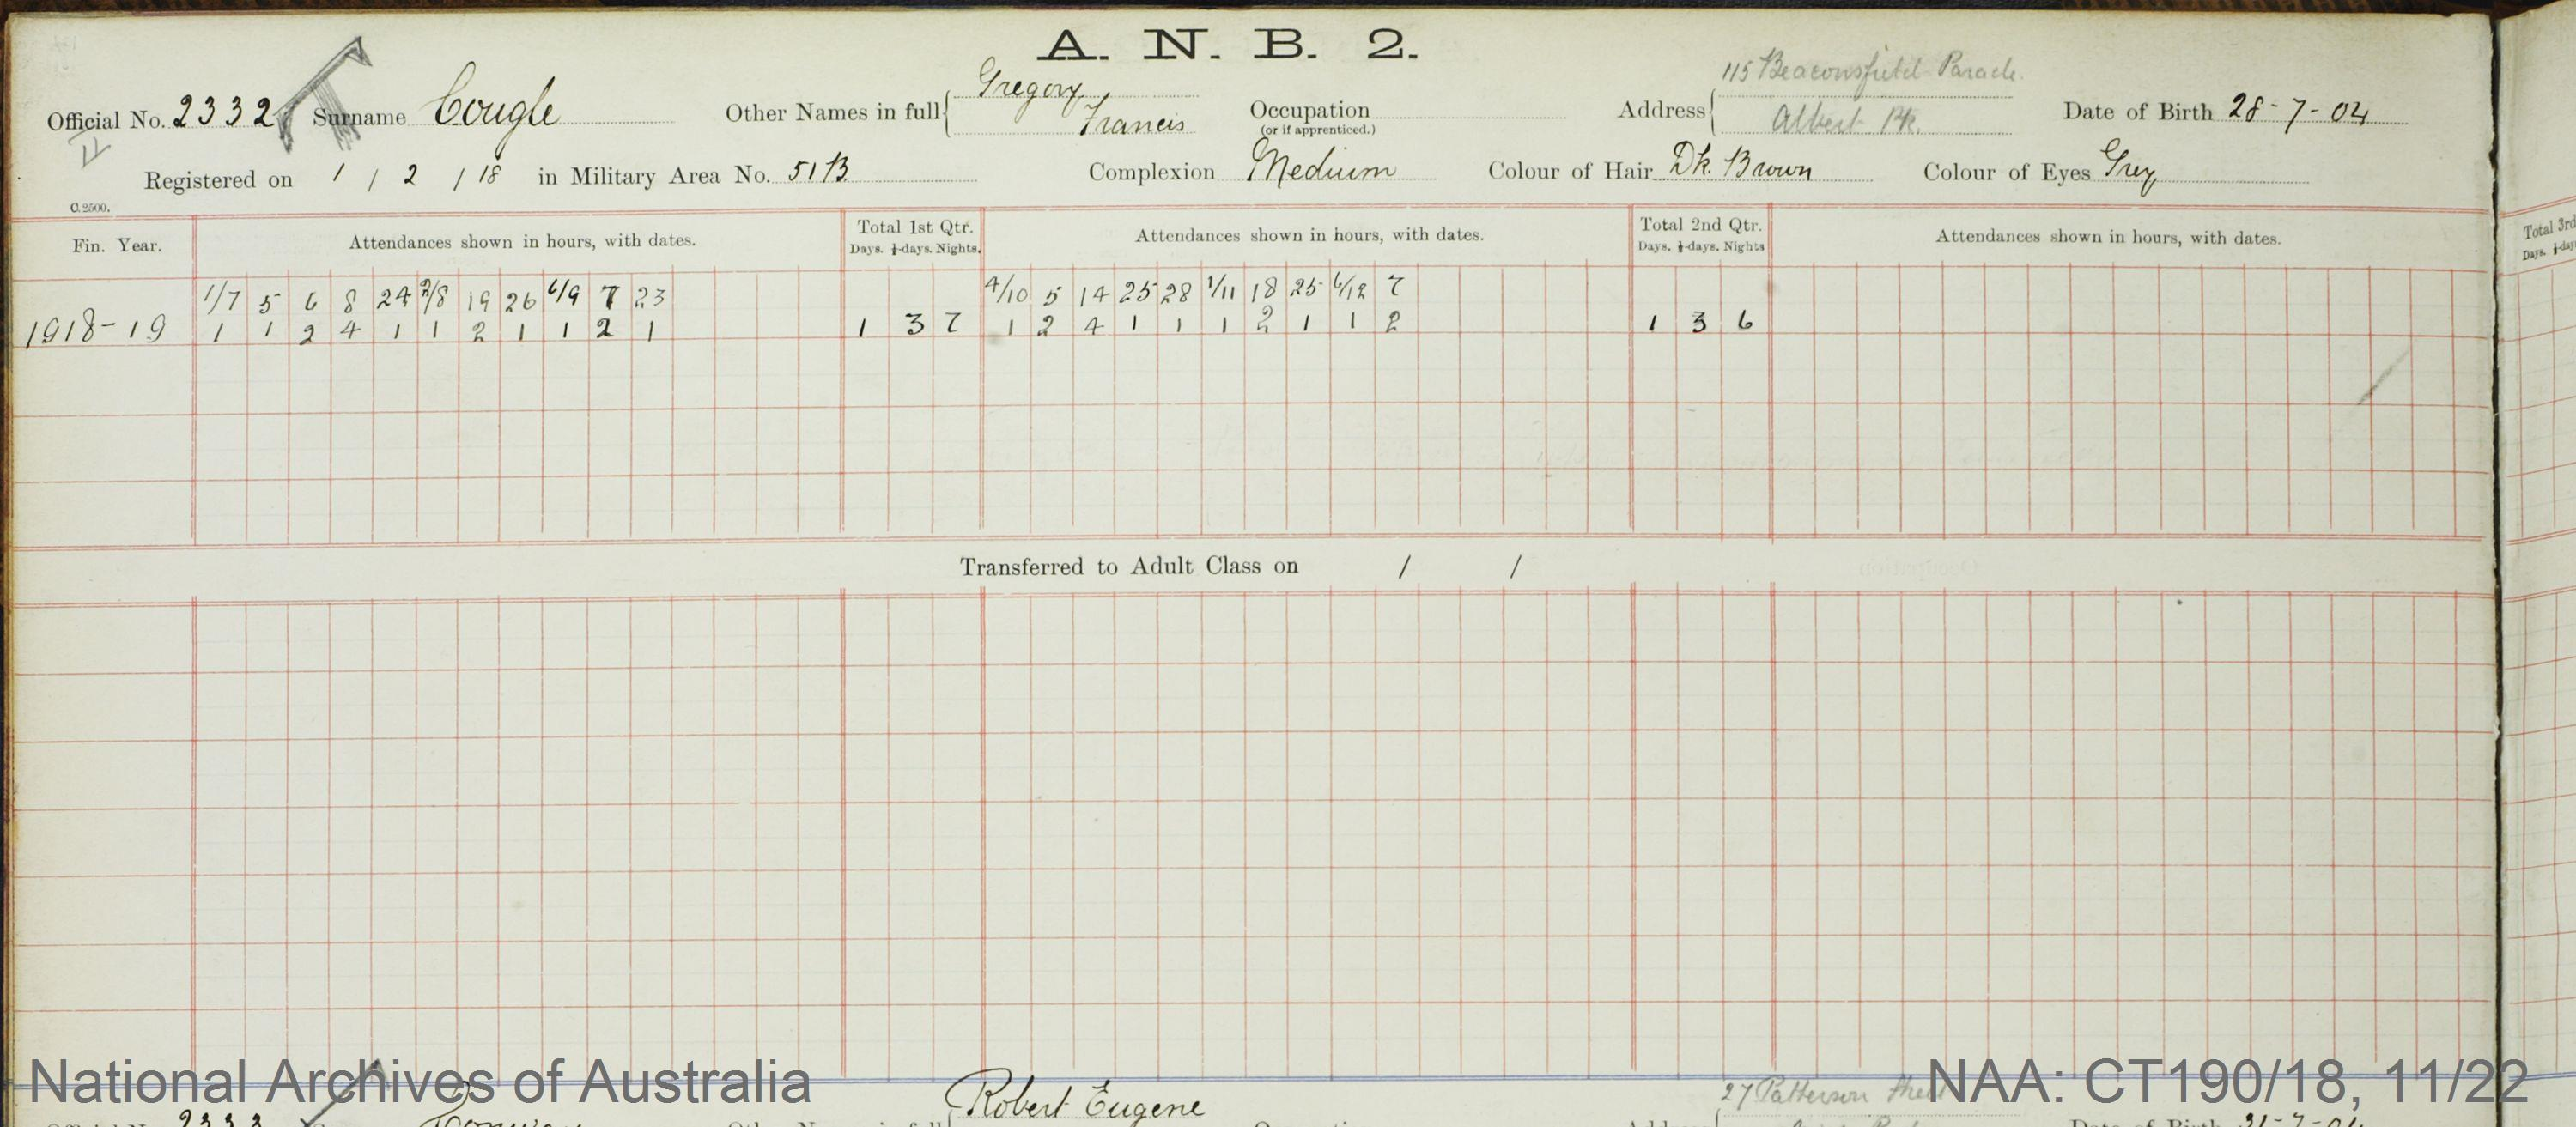 SURNAME - COUGLE;  GIVEN NAME(S) - Gregory Francis;  OFFICIAL NUMBER - 2332;  DATE OF BIRTH - 28 July 1904;  PLACE OF BIRTH - [Unknown];  NEXT OF KIN - [Unknown] ;  SERVICE/STATION - Port Melbourne;  REGISTRATION DATE - 1 February 1918